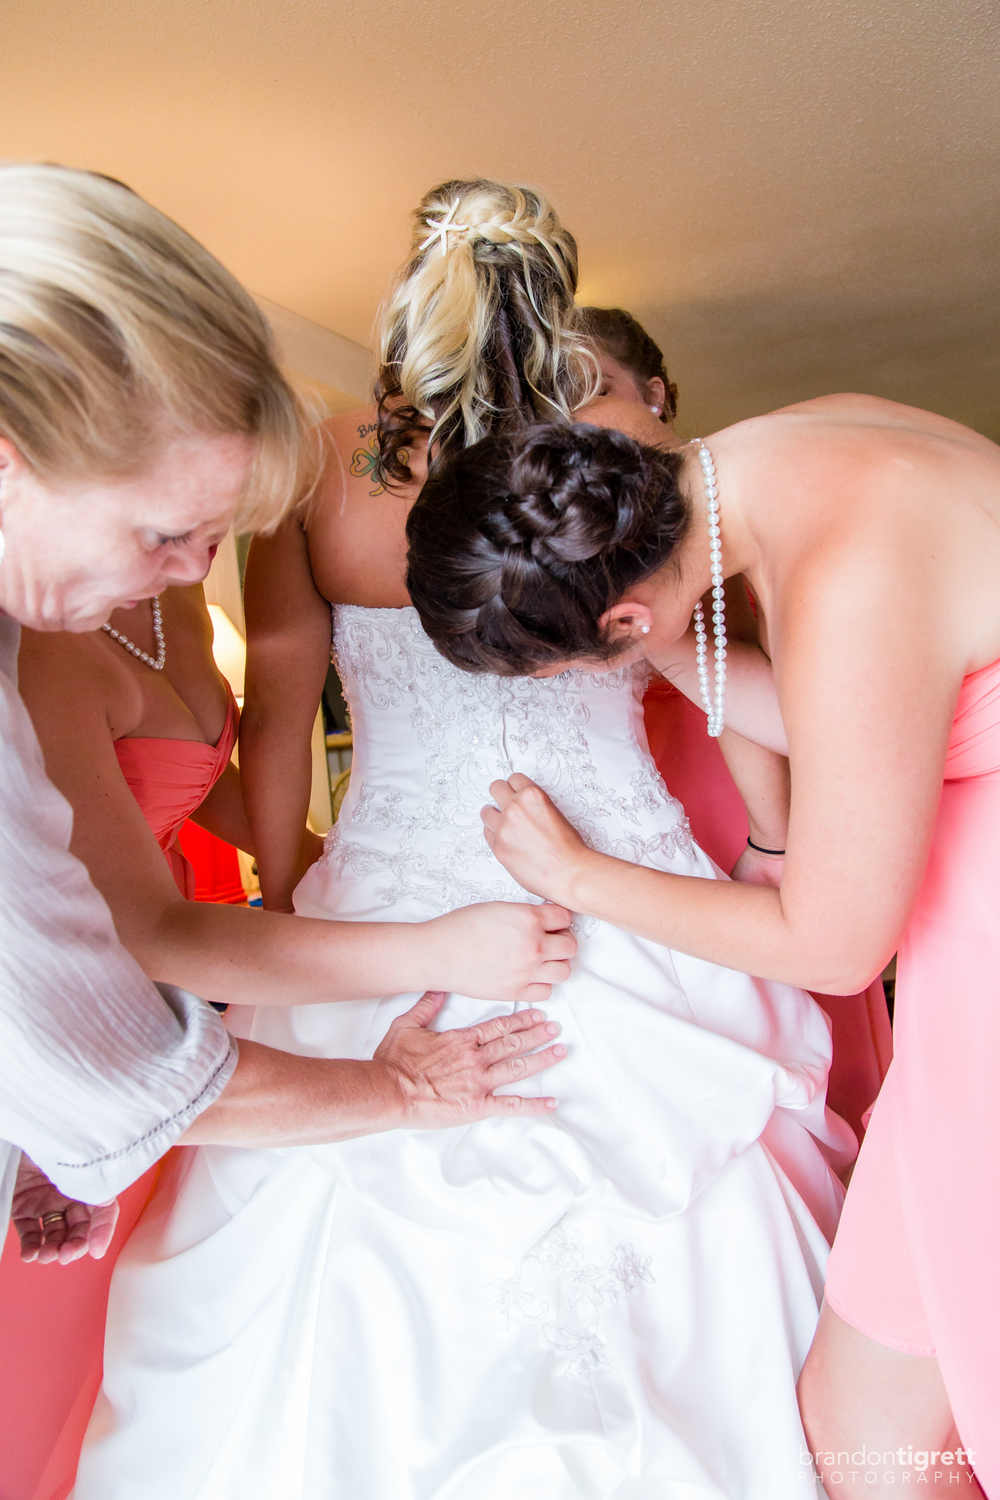 Beach Wedding Getting Ready Photos - Bridesmaids button brides gown